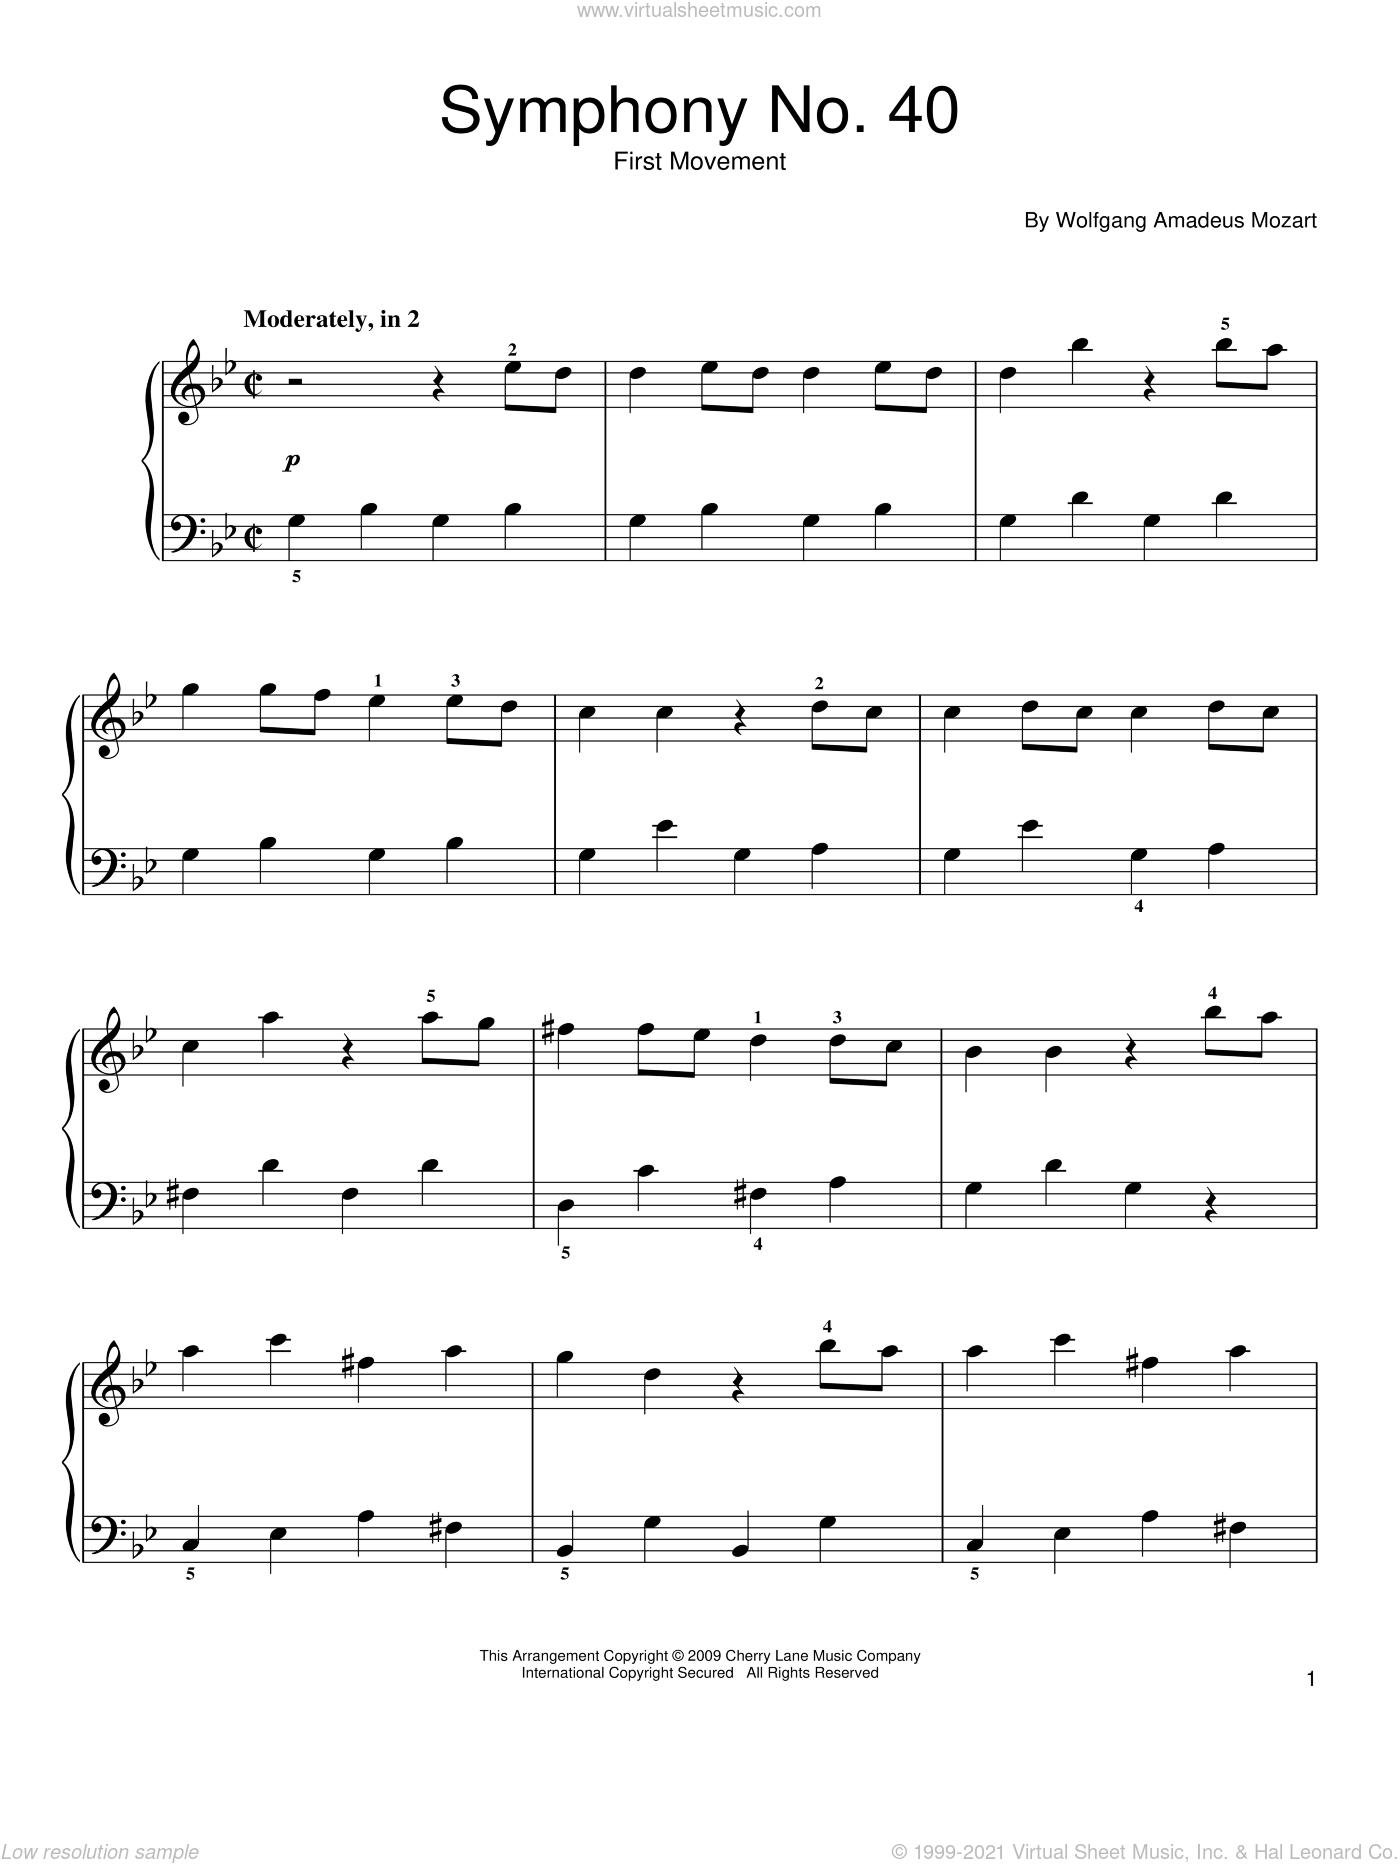 Symphony No. 40 in G Minor, First Movement Excerpt sheet music for piano solo by Wolfgang Amadeus Mozart, classical score, easy skill level